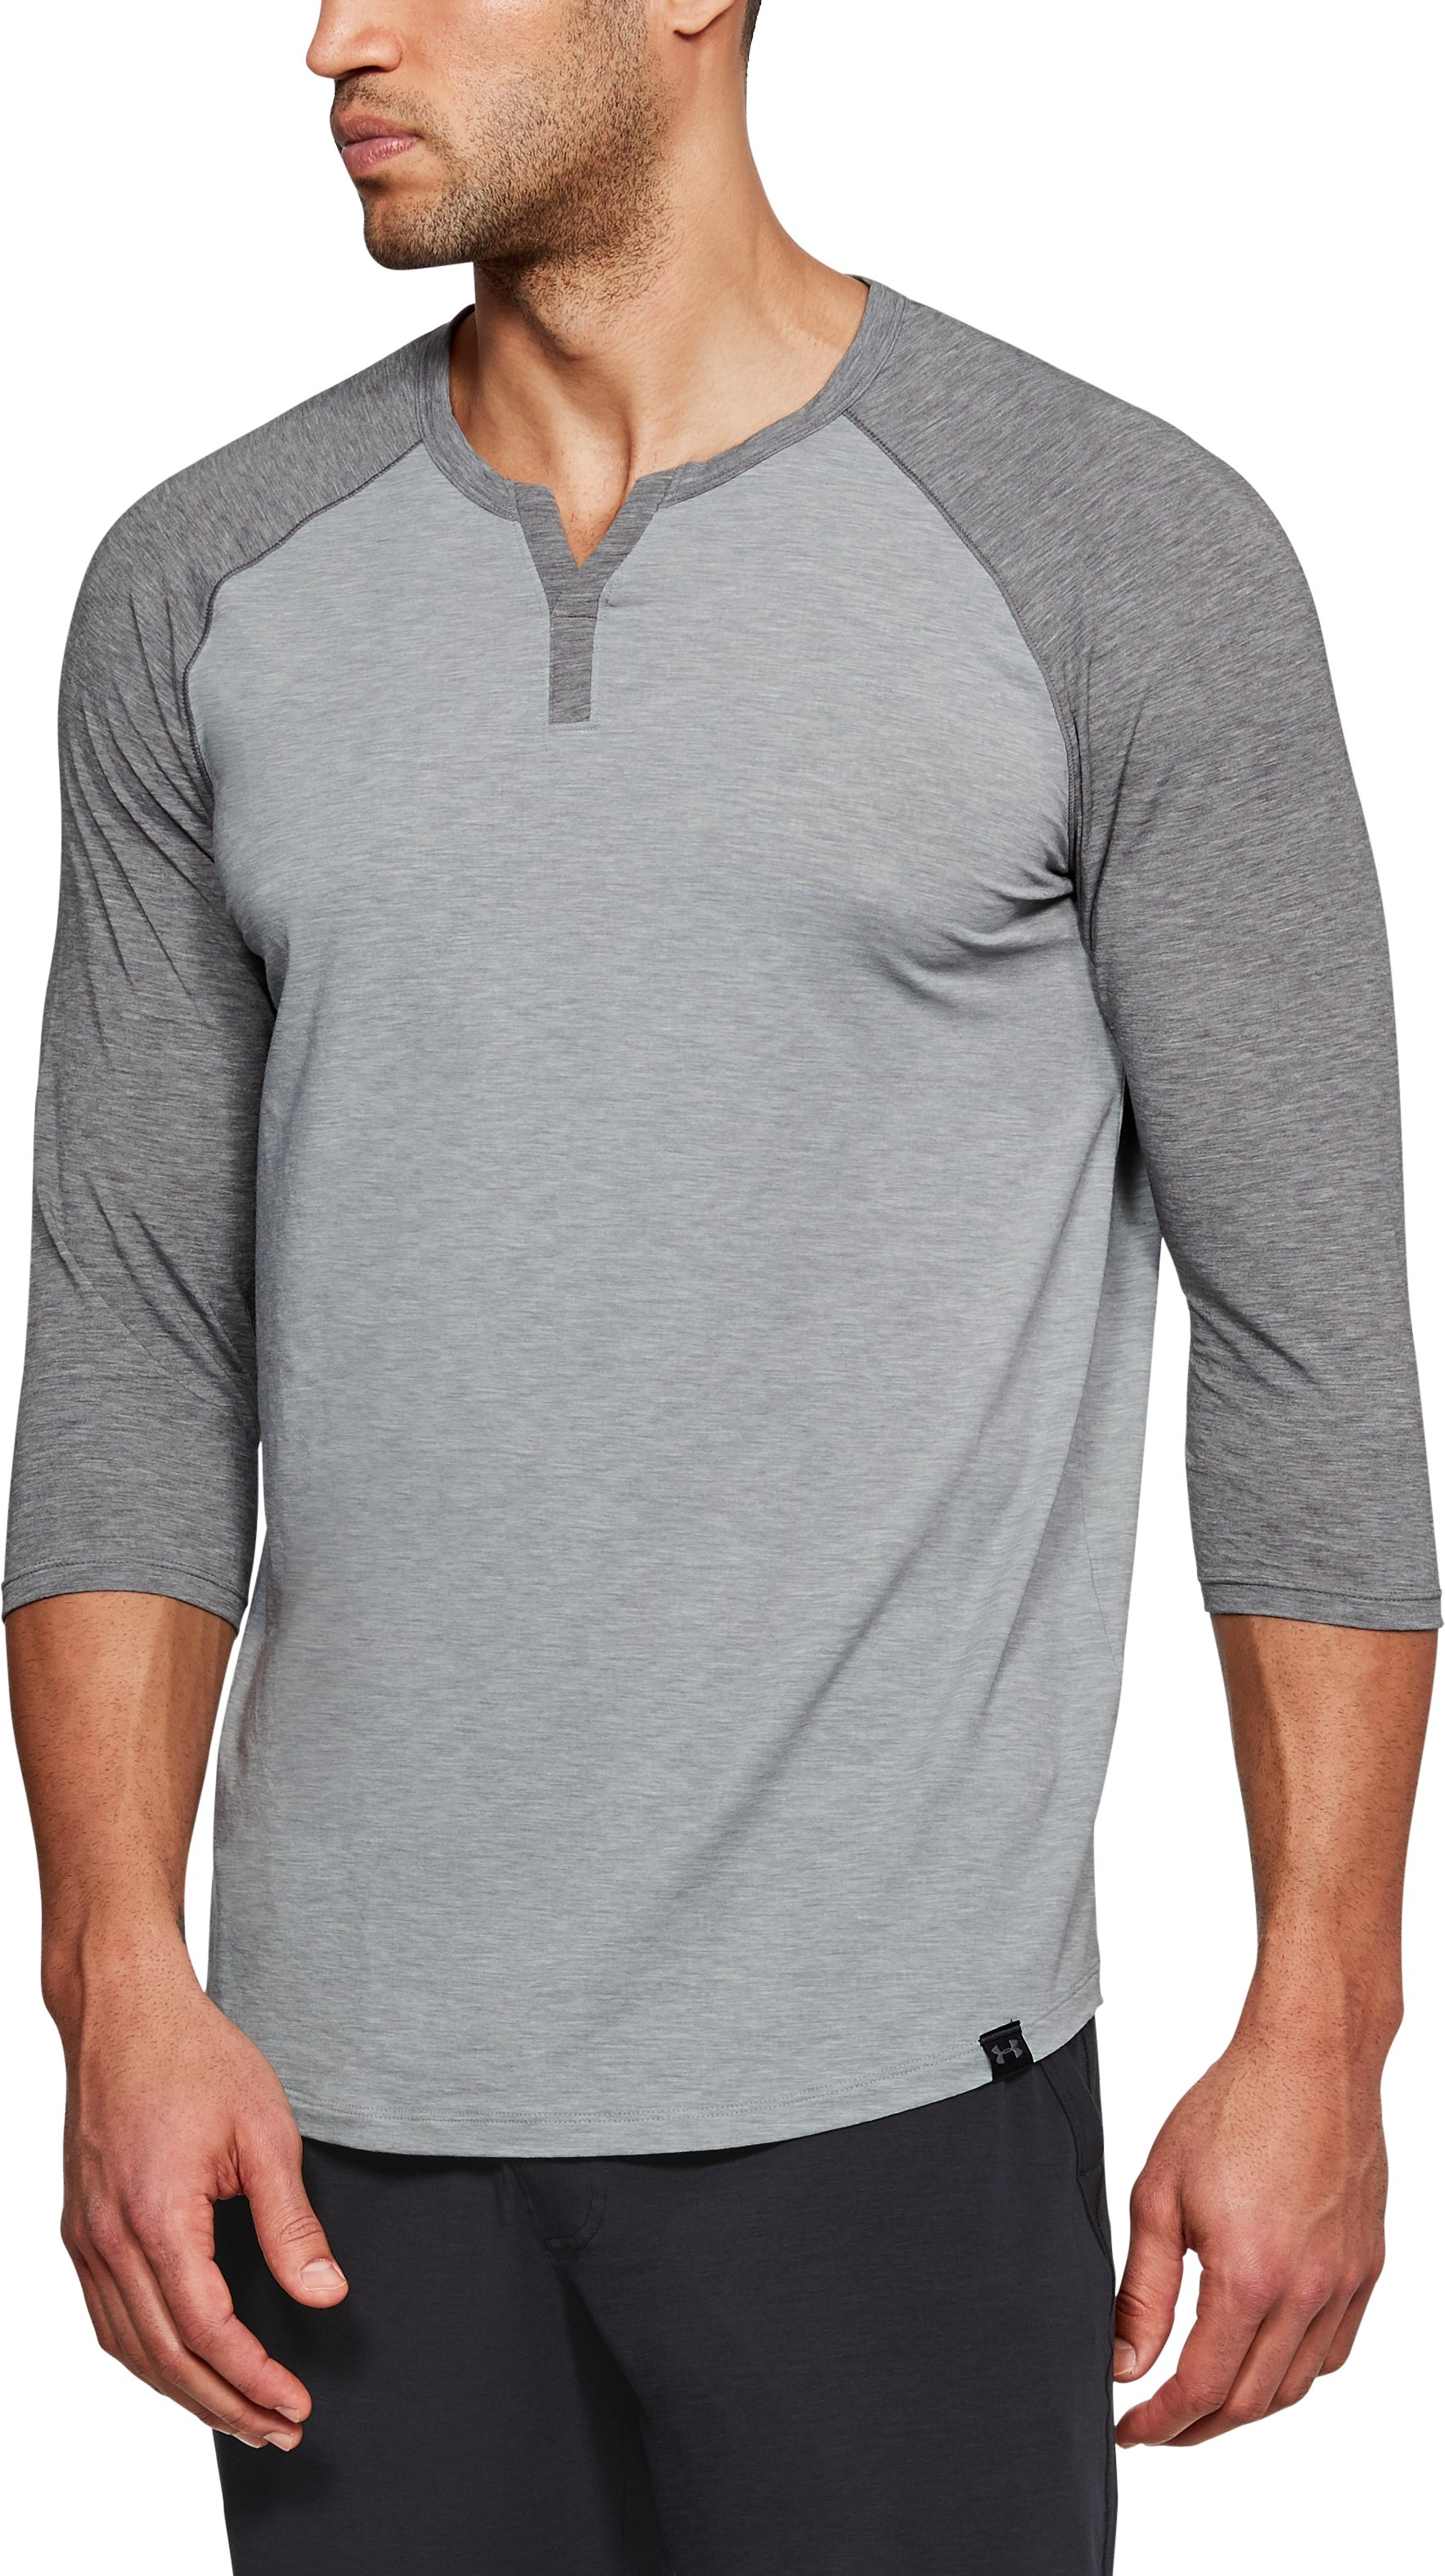 Men's Athlete Recovery Sleepwear Henley, STEEL FADE HEATHER, undefined